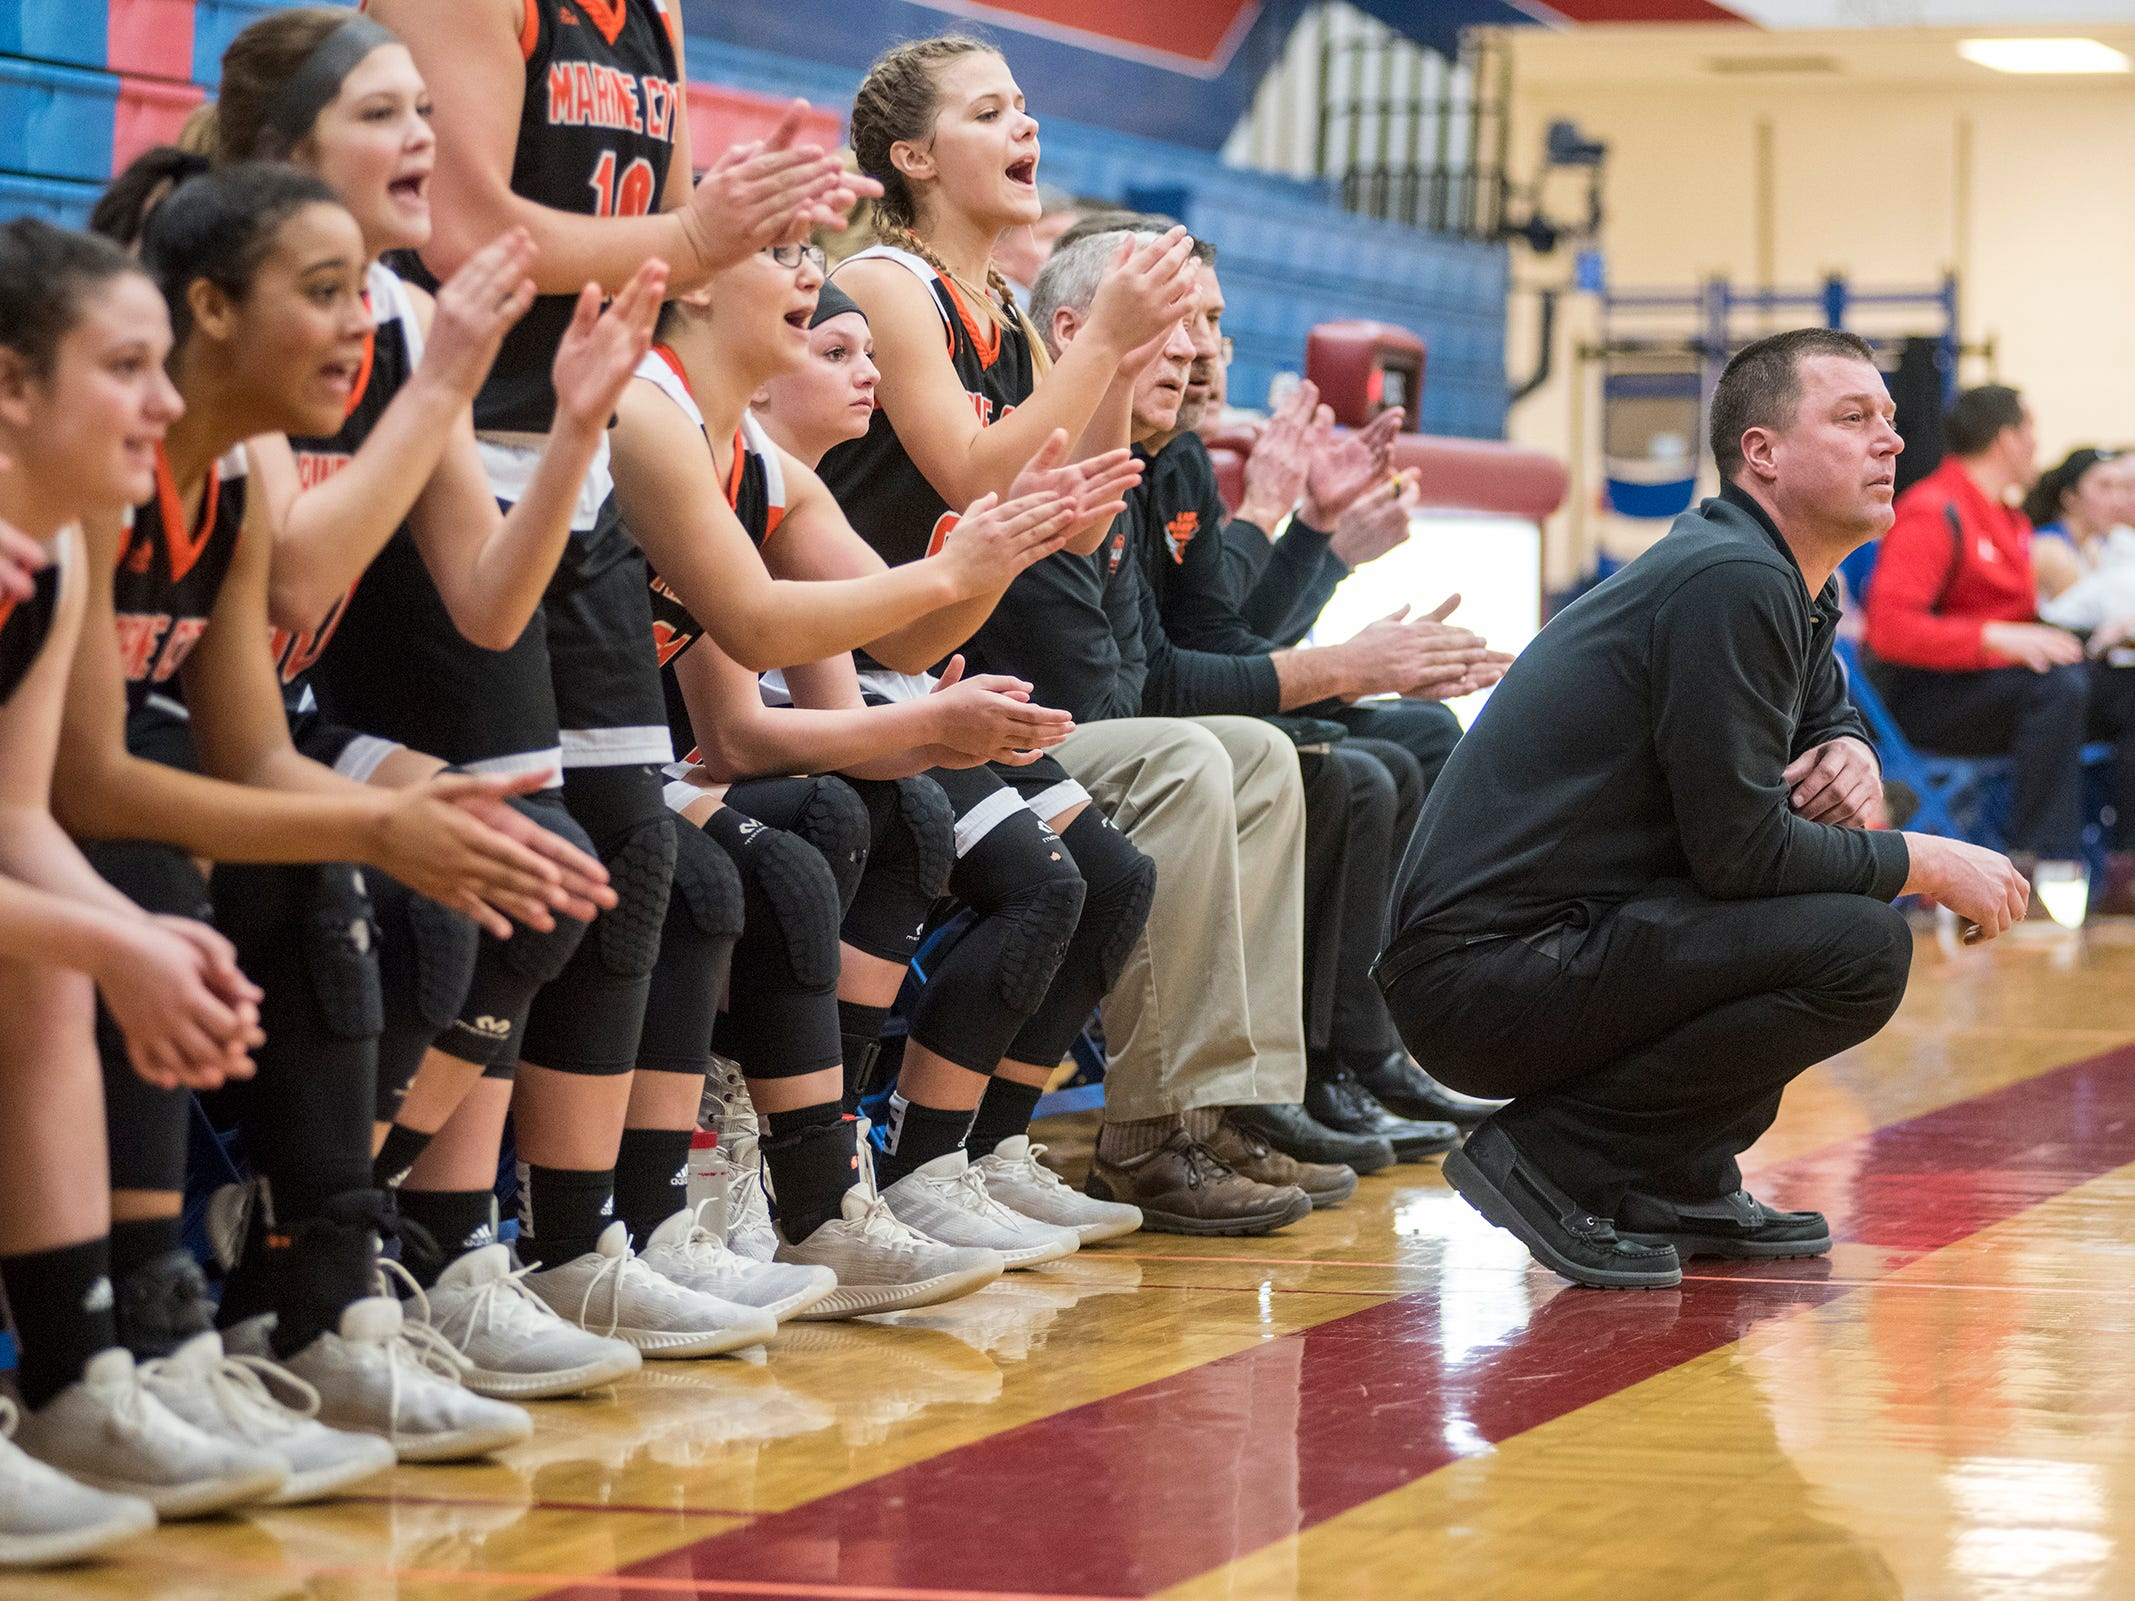 Marine City High School basketball coach Jeff Austin watches from the bench while the team cheers on a point behind him during their game against St. Clair Friday, Feb. 8, 2019 at St. Clair High School.